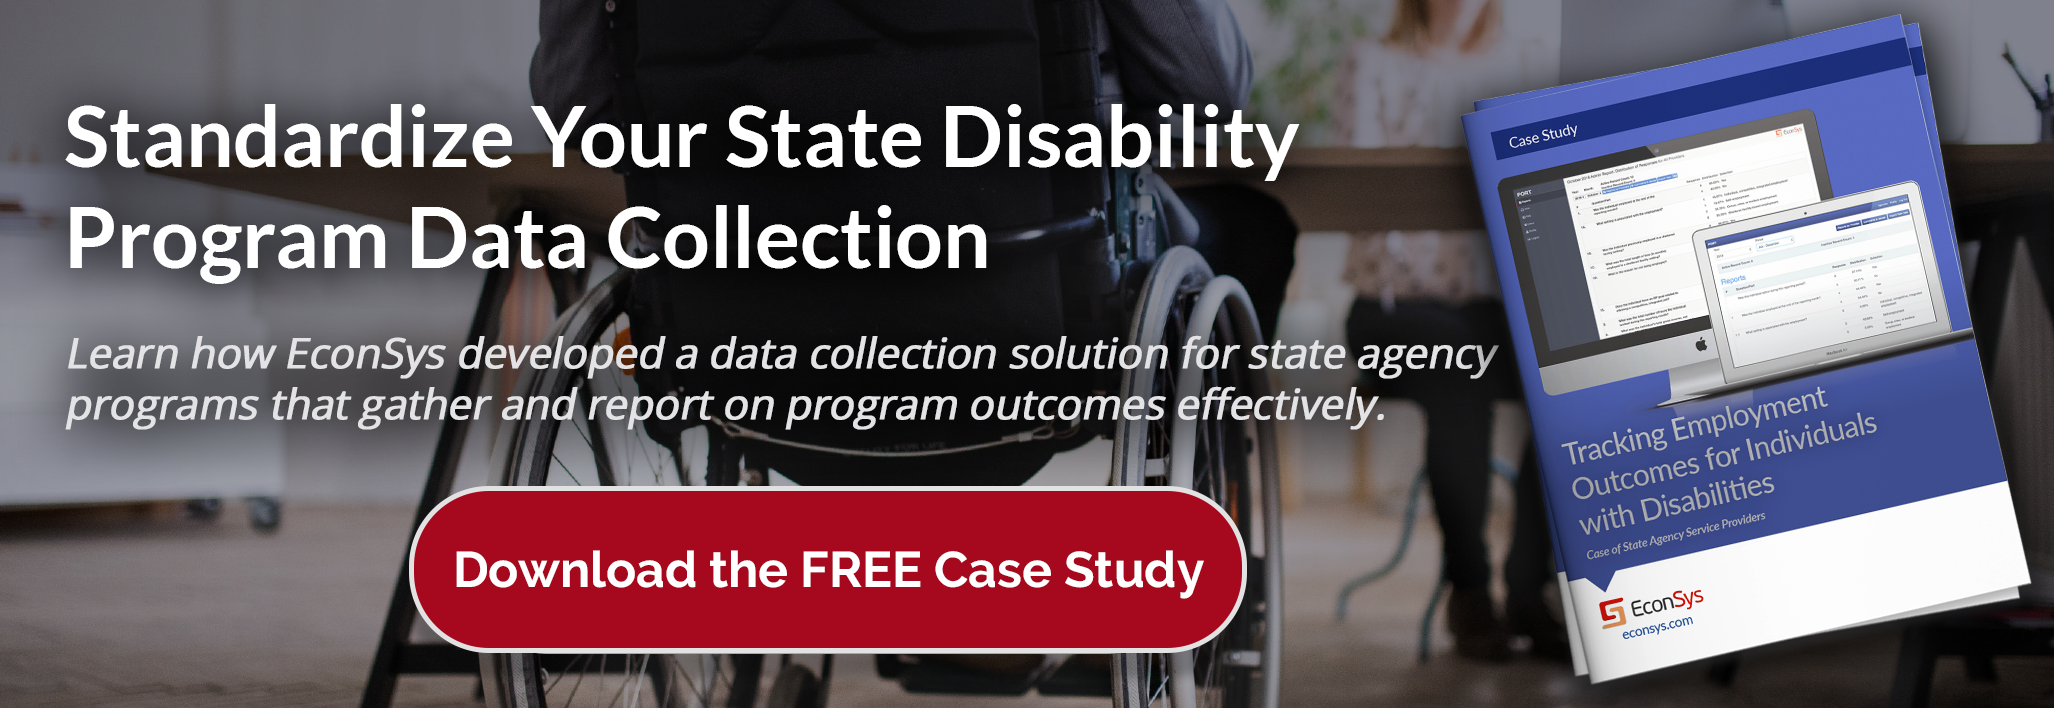 Download the State Agency Service Provider Case Study